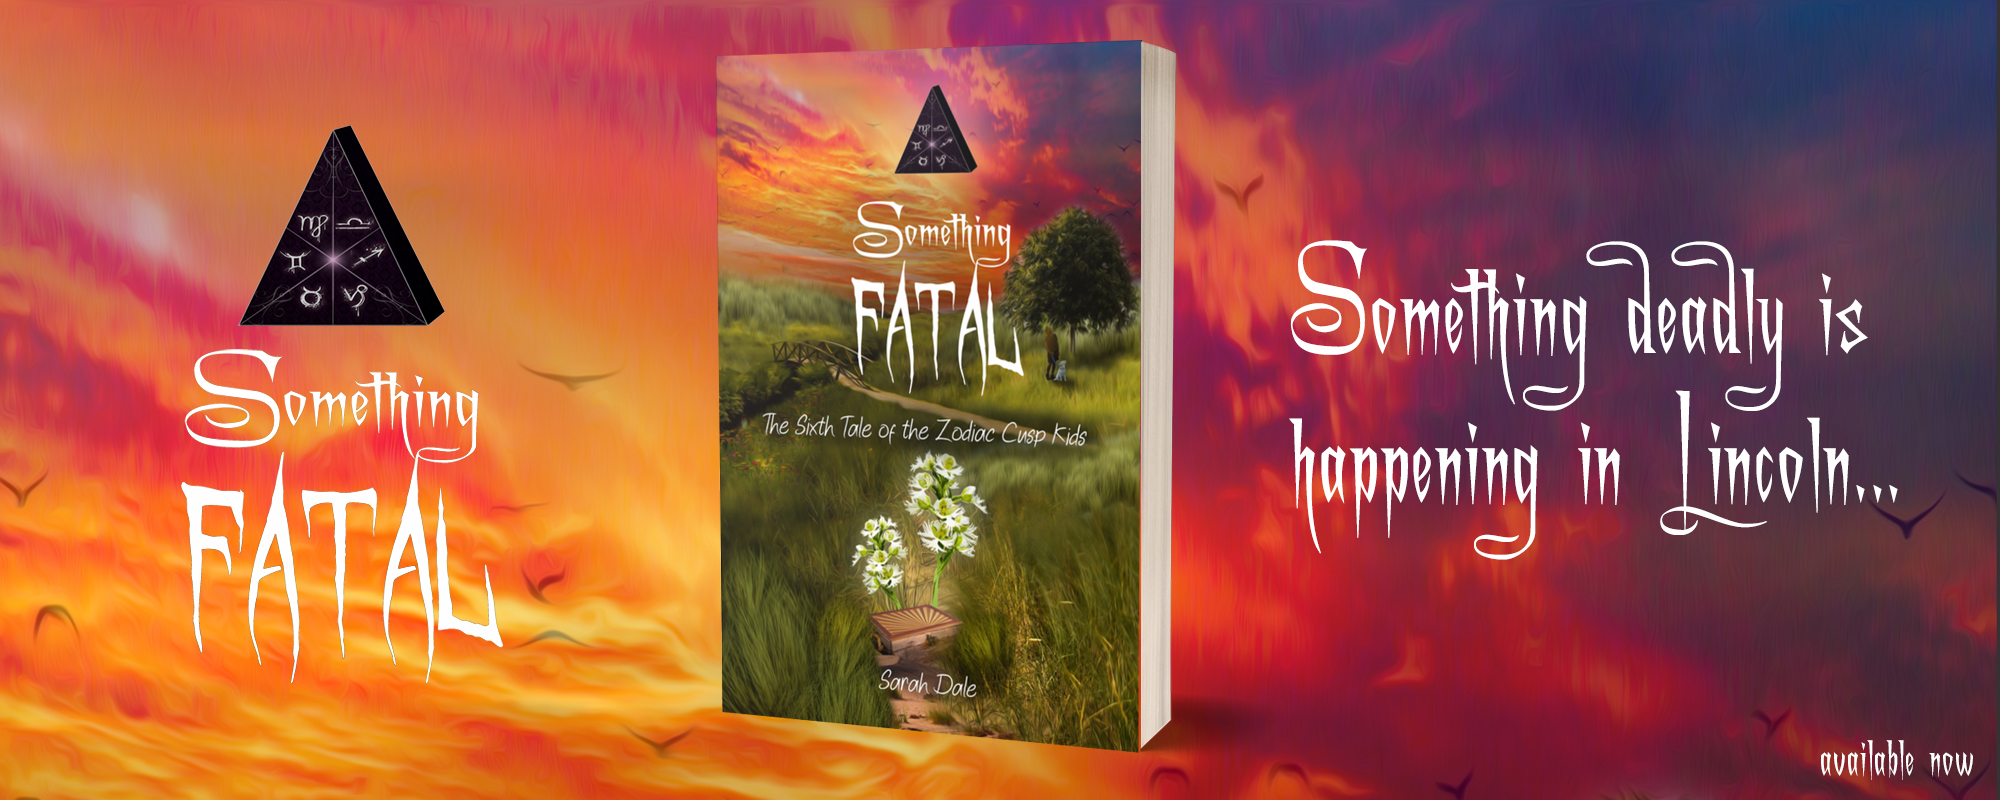 Something Fatal by Sarah Dale, available now